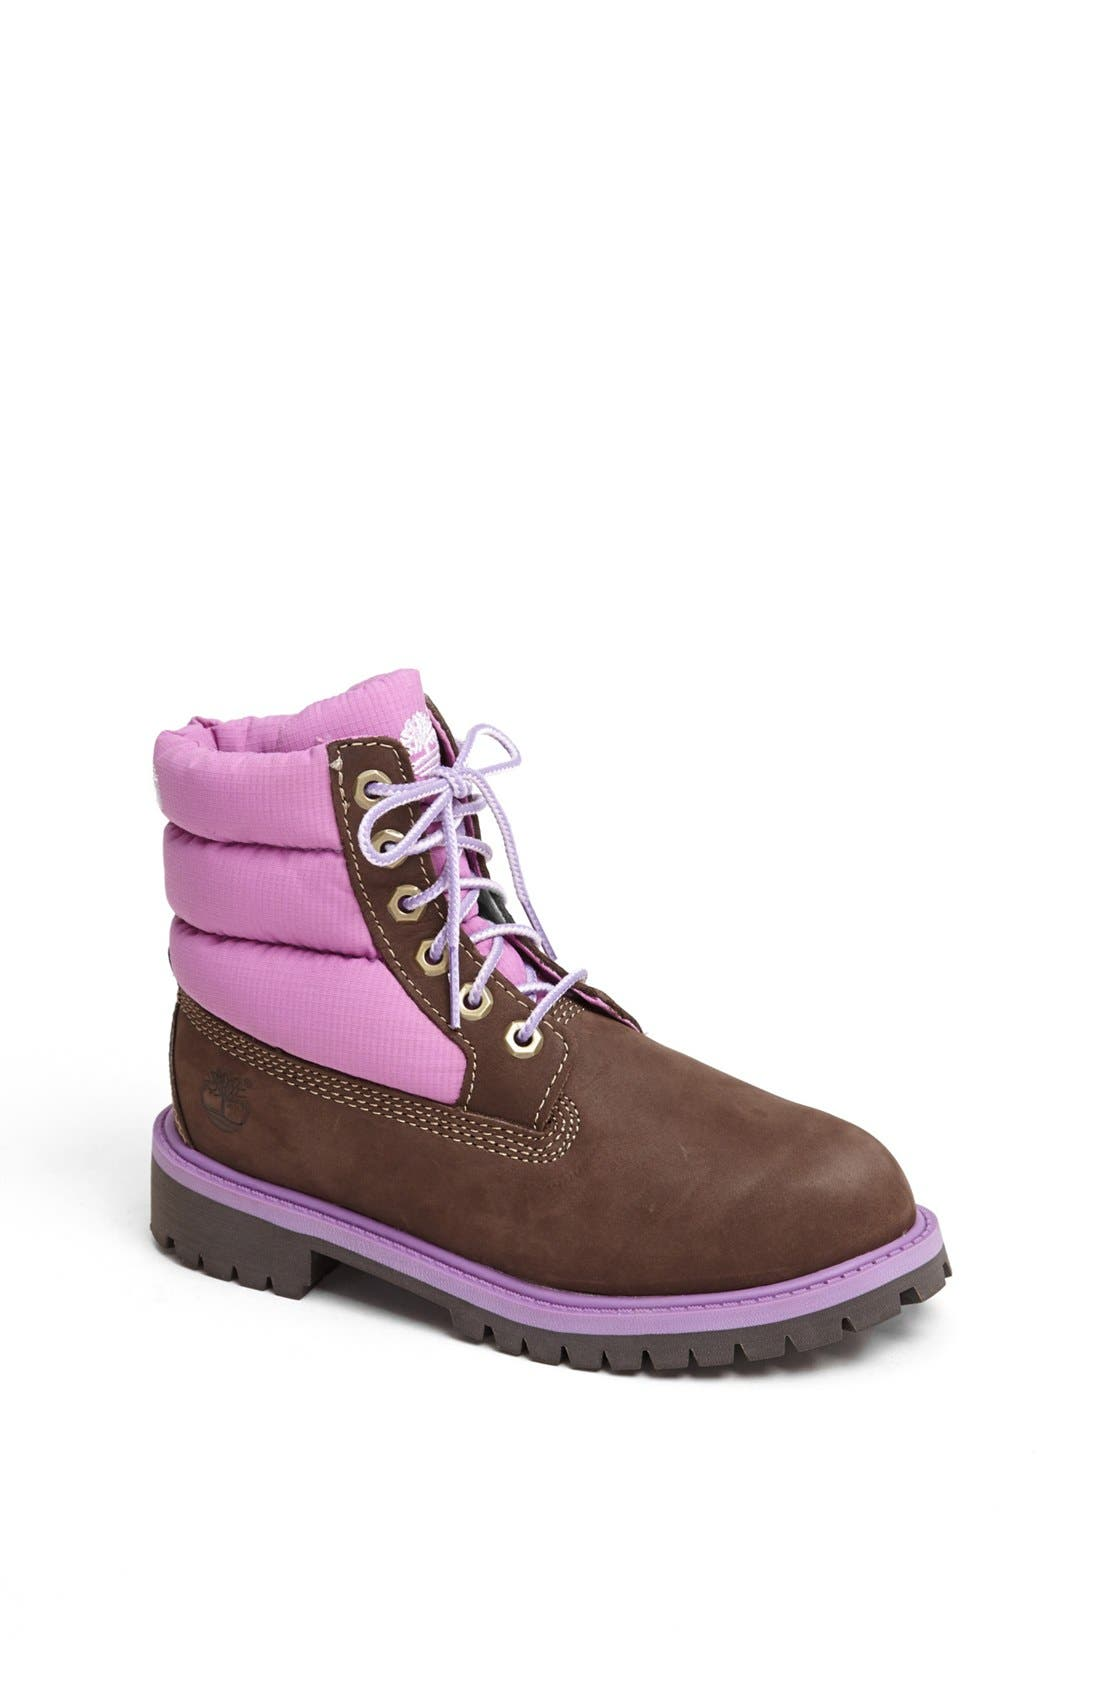 Main Image - Timberland Quilted Boot (Toddler, Little Kid & Big Kid)